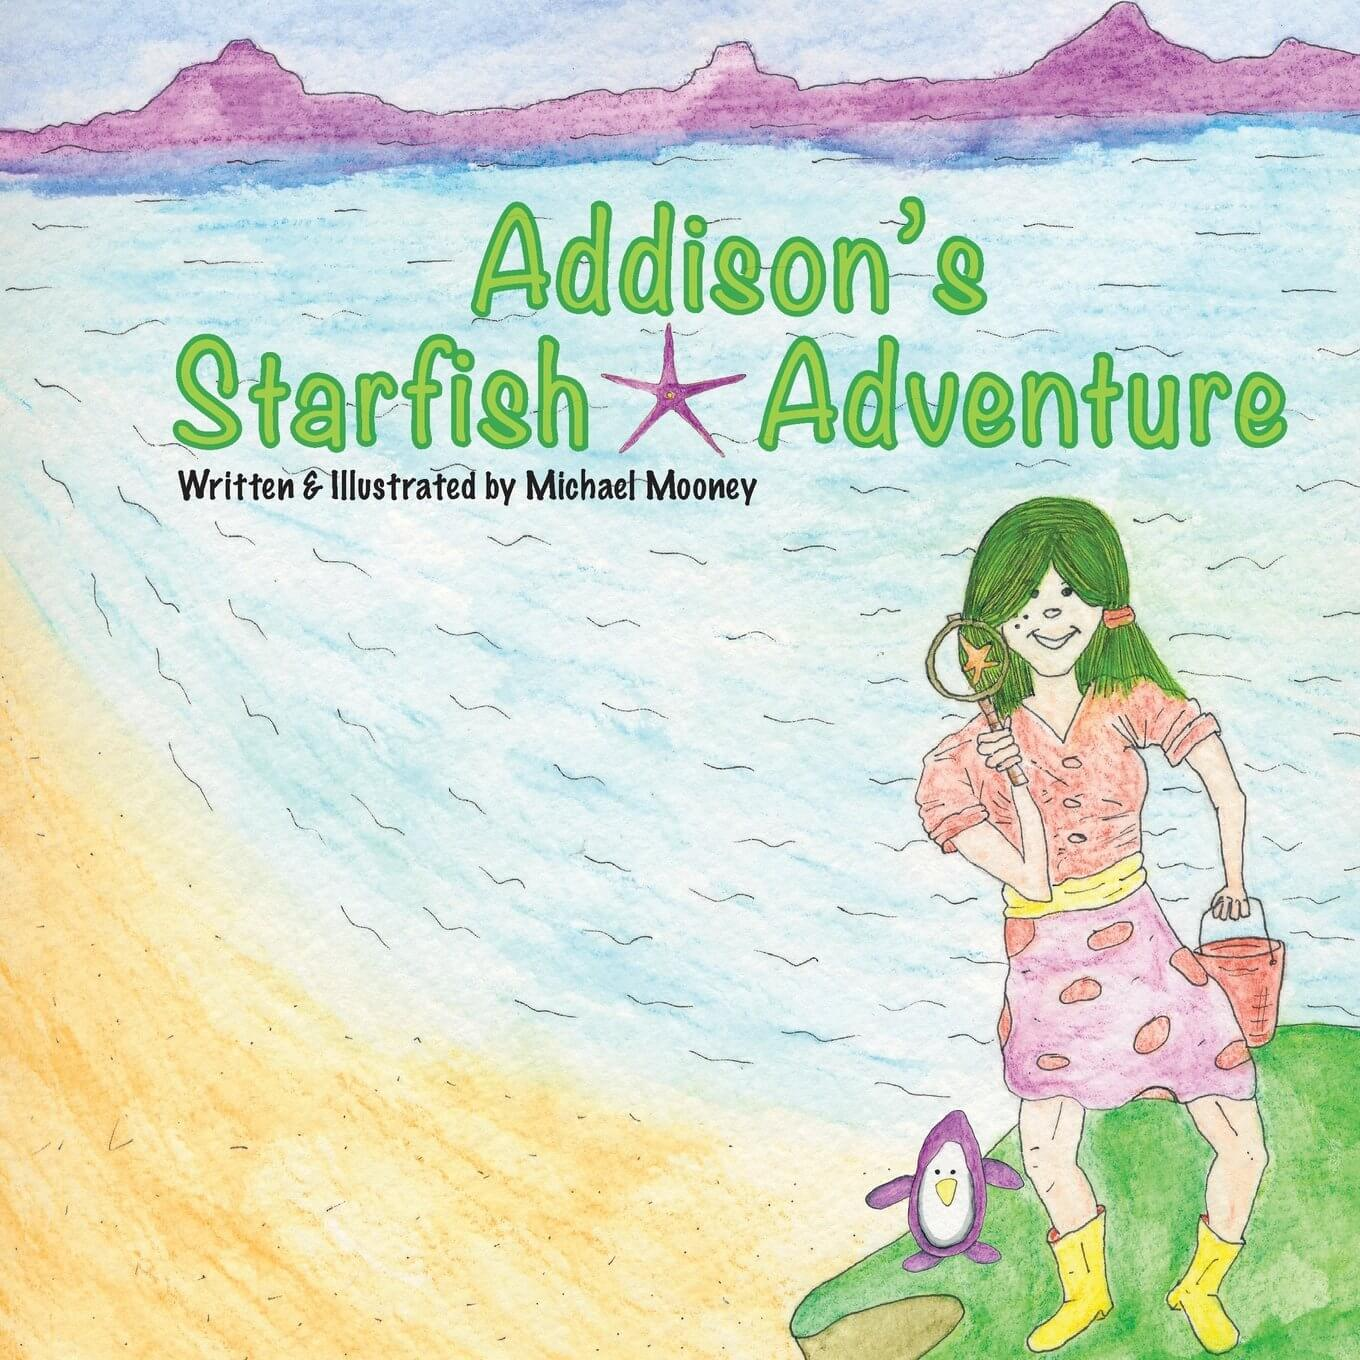 Addisons Starfish Adventure